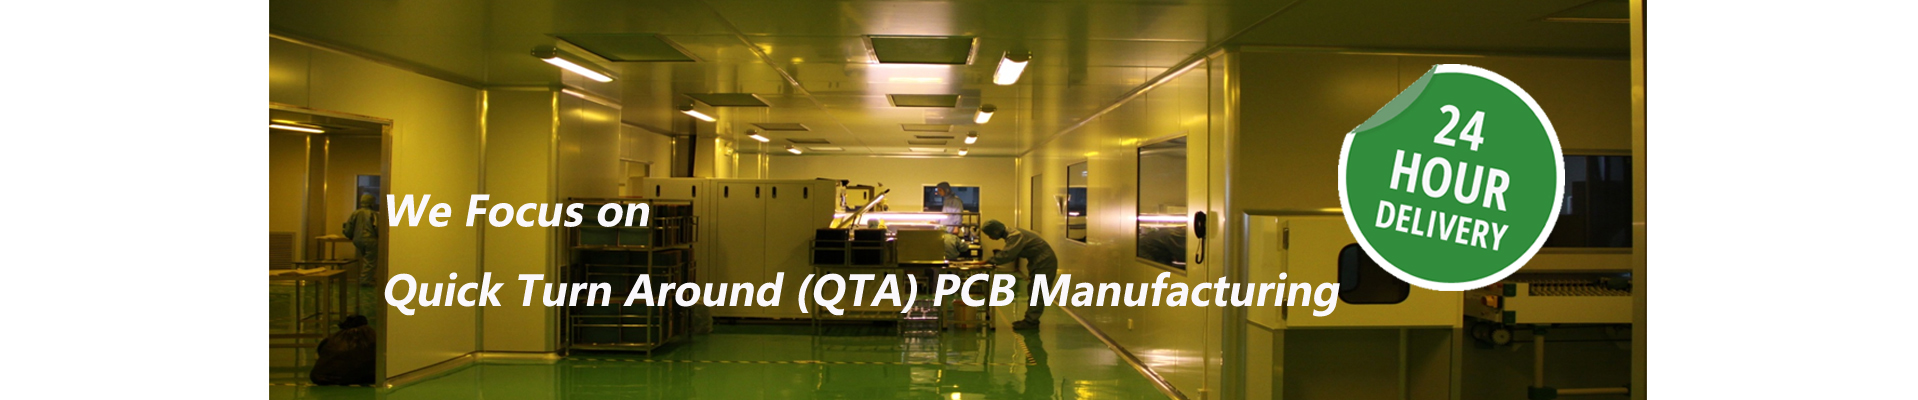 Quick Turn PCB|Quick Turn Around PCB|MTL PCB|